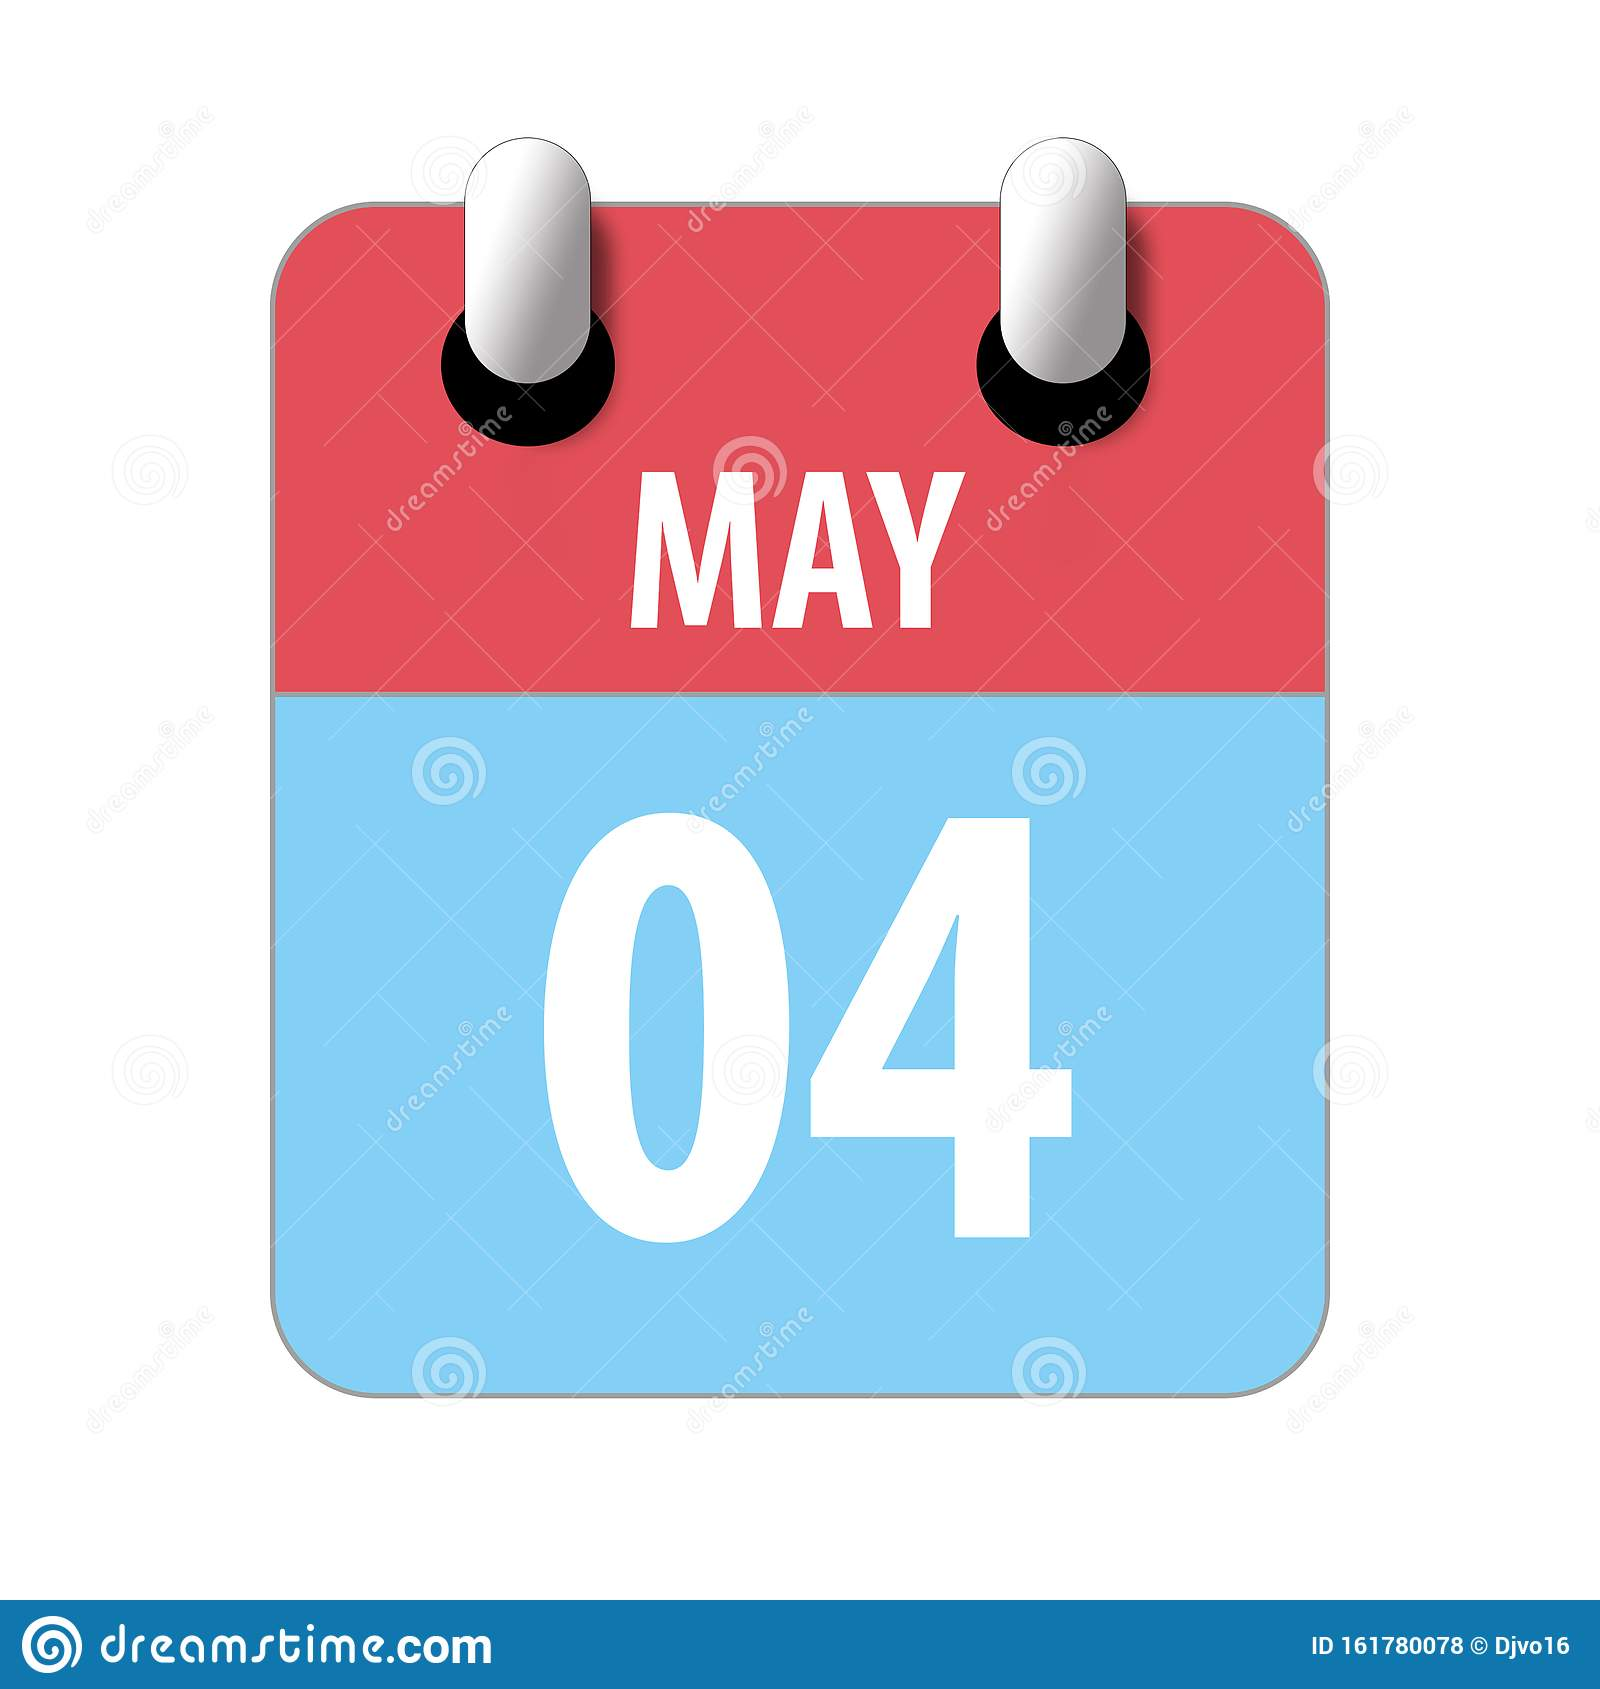 may-th-day-month-simple-calendar-icon-w